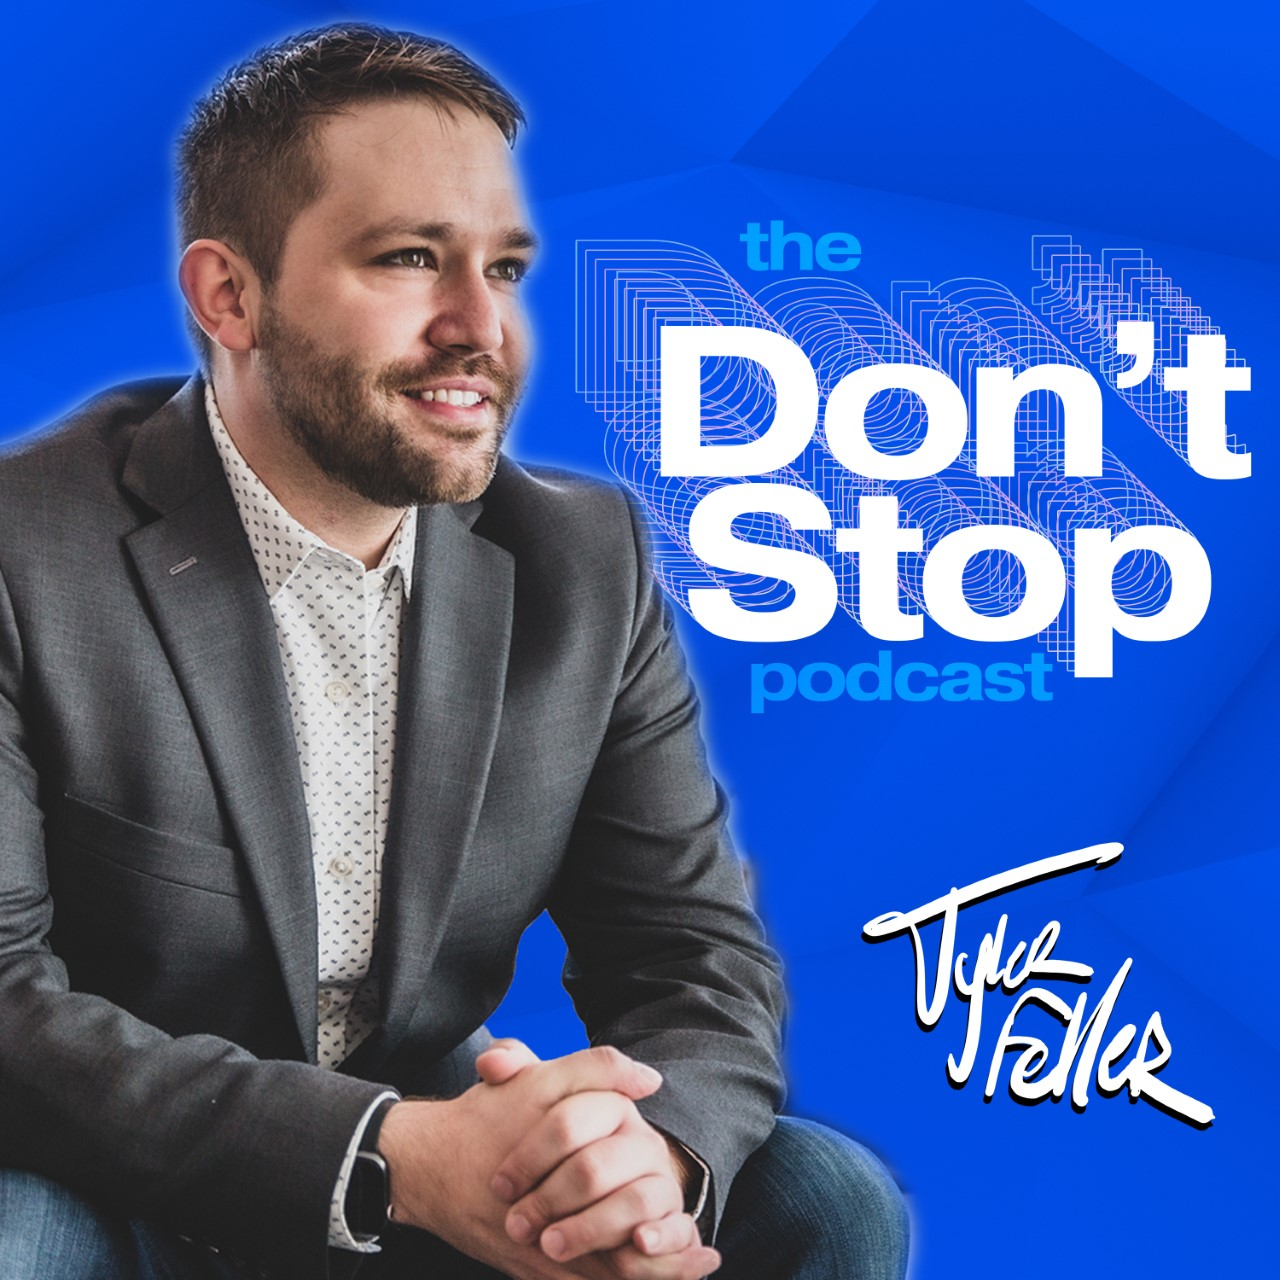 Tyler Feller Inspires Leaders With His New Podcast